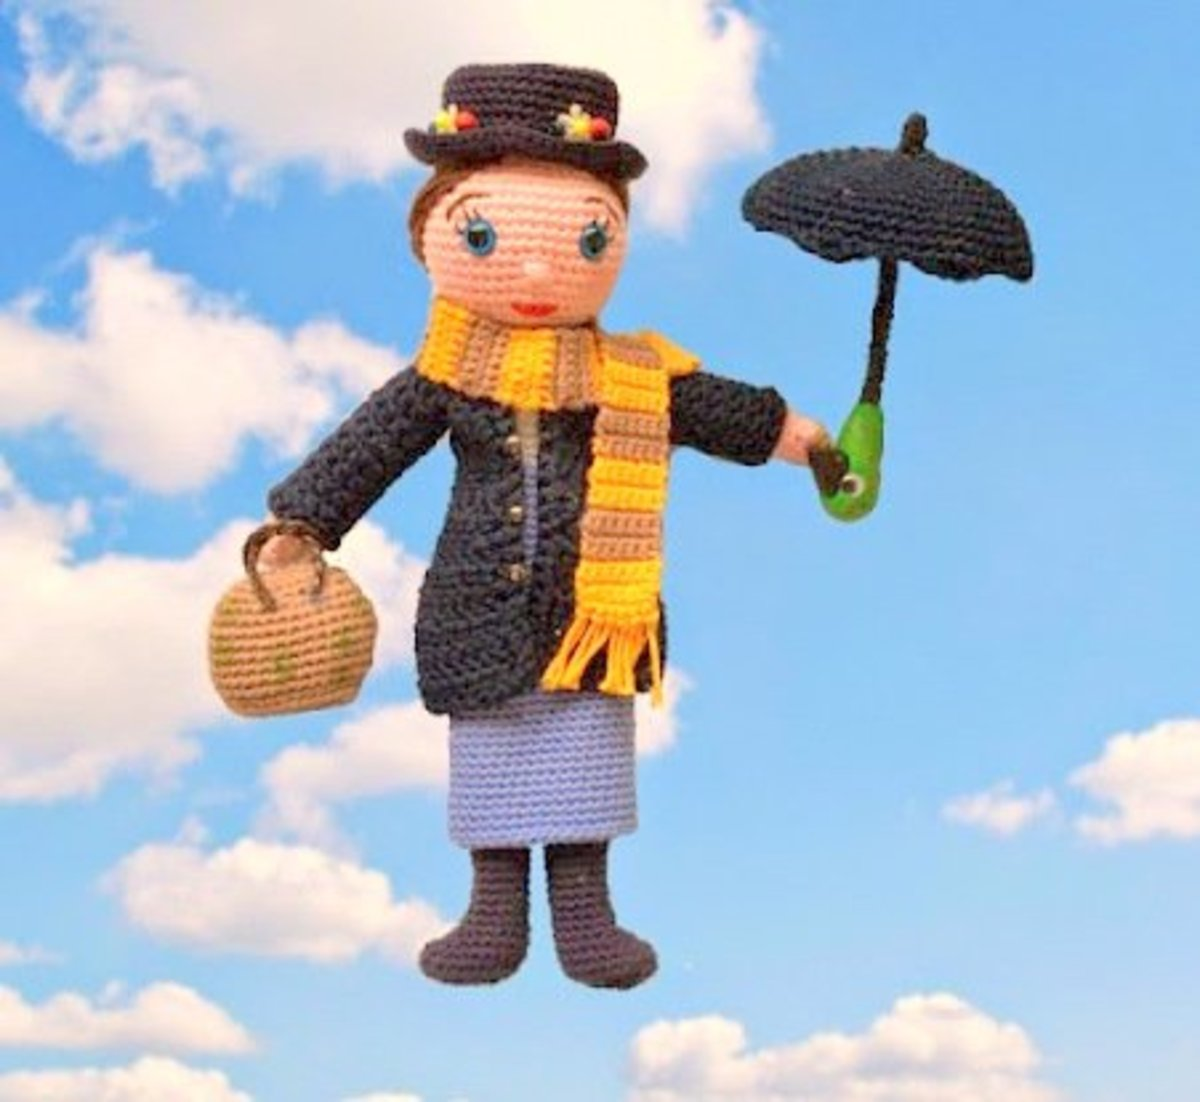 Mary Poppins Amigurumi Doll: Free Crochet Pattern!